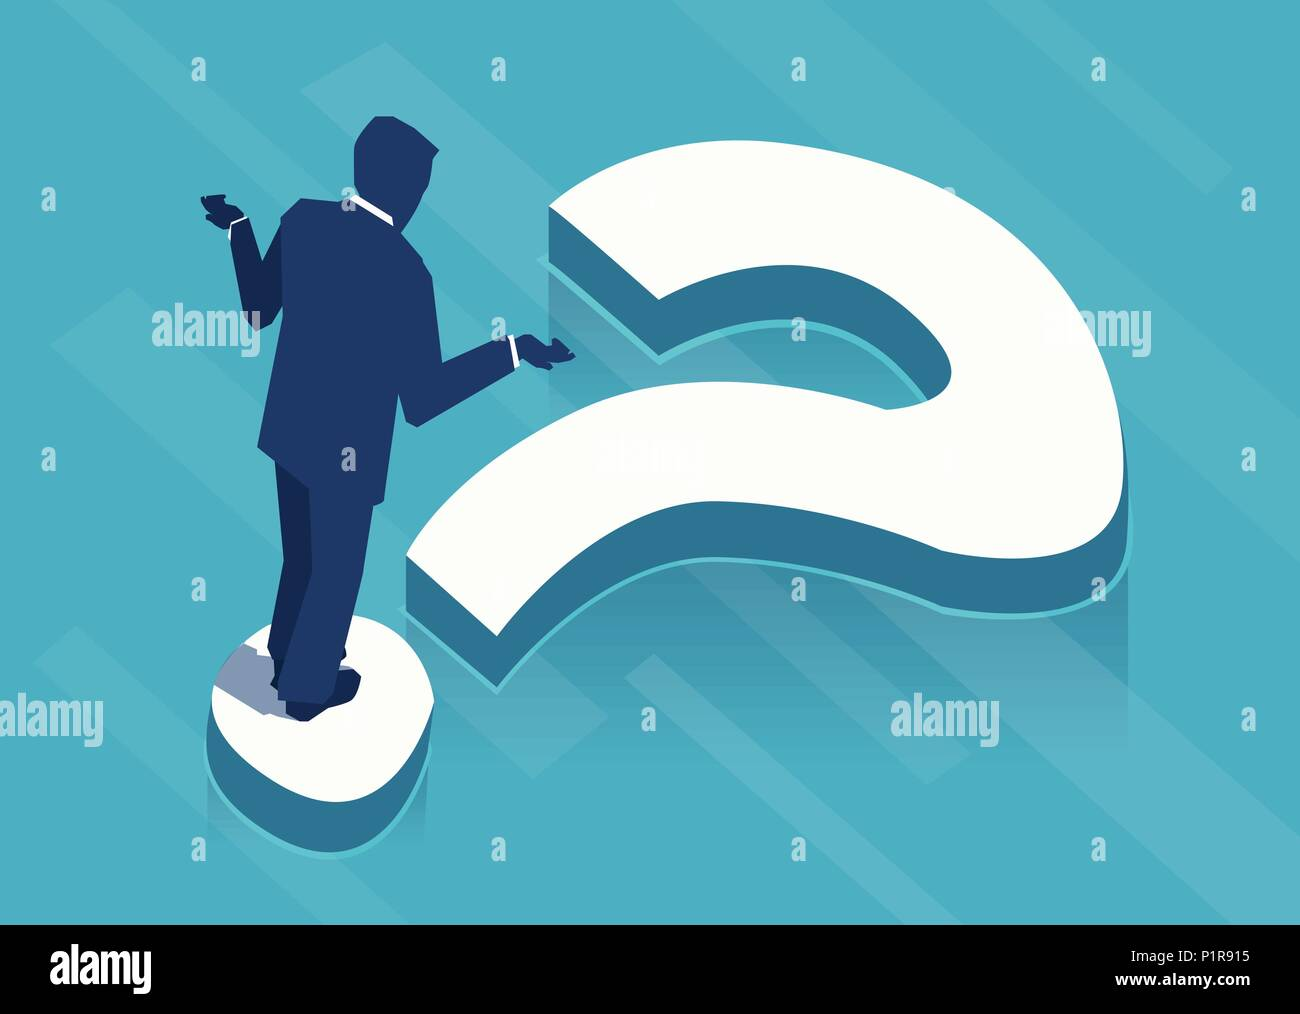 Vector illustration of businessman standing on question mark in perplexion. - Stock Vector